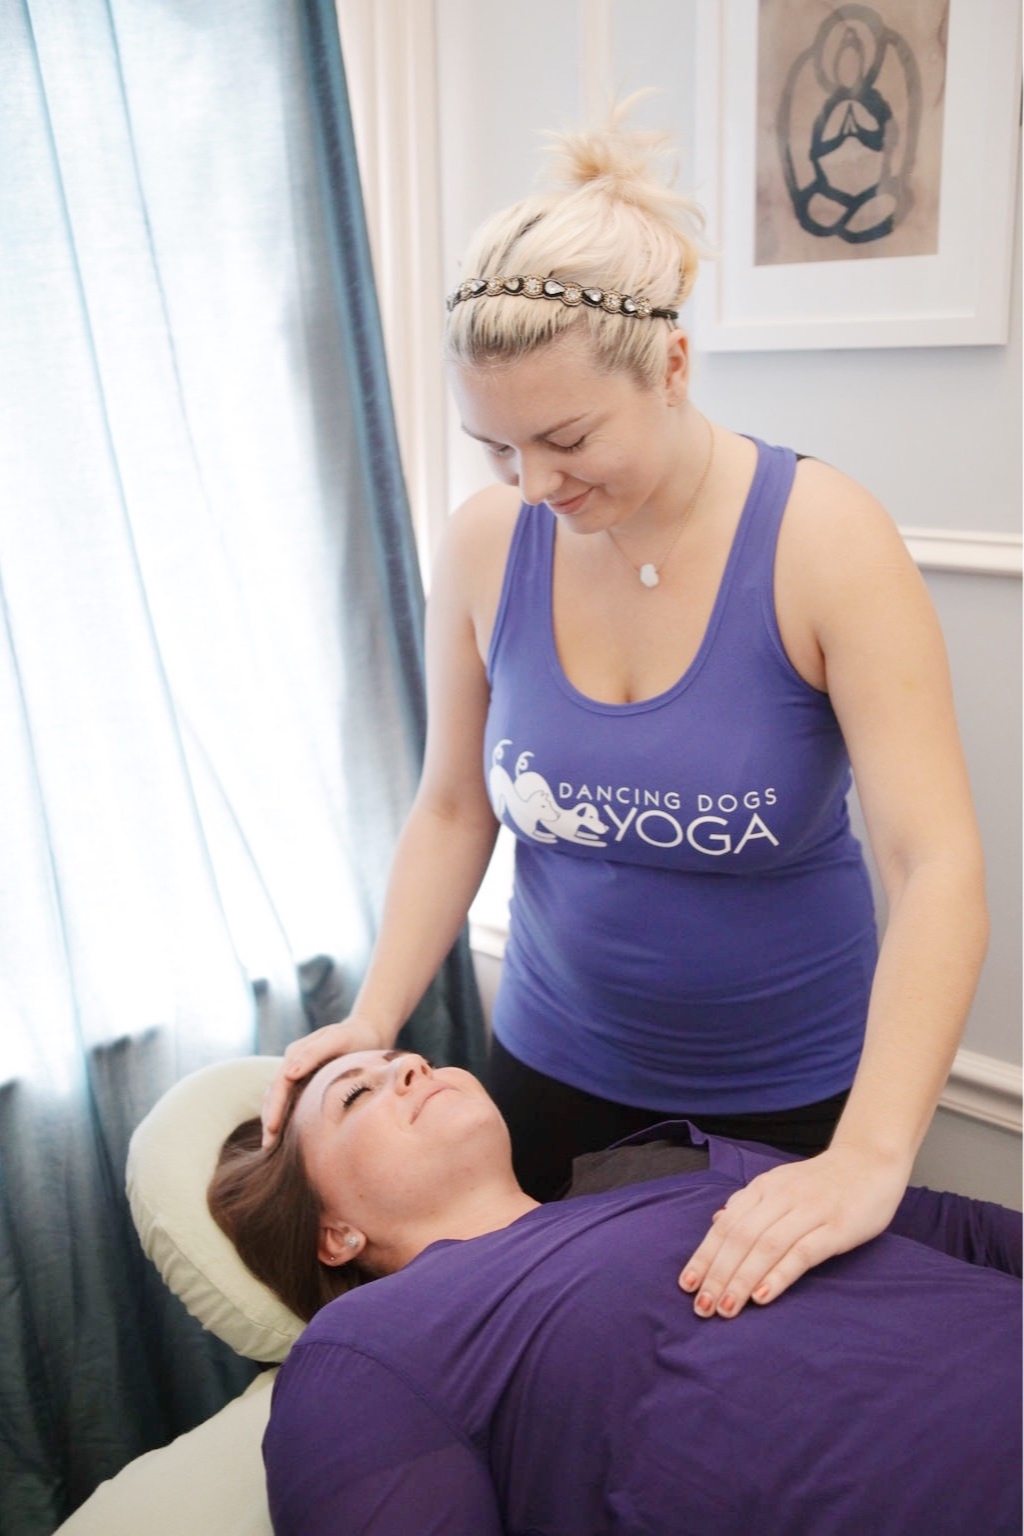 We have two amazing reiki masters, Julianna and Morgan